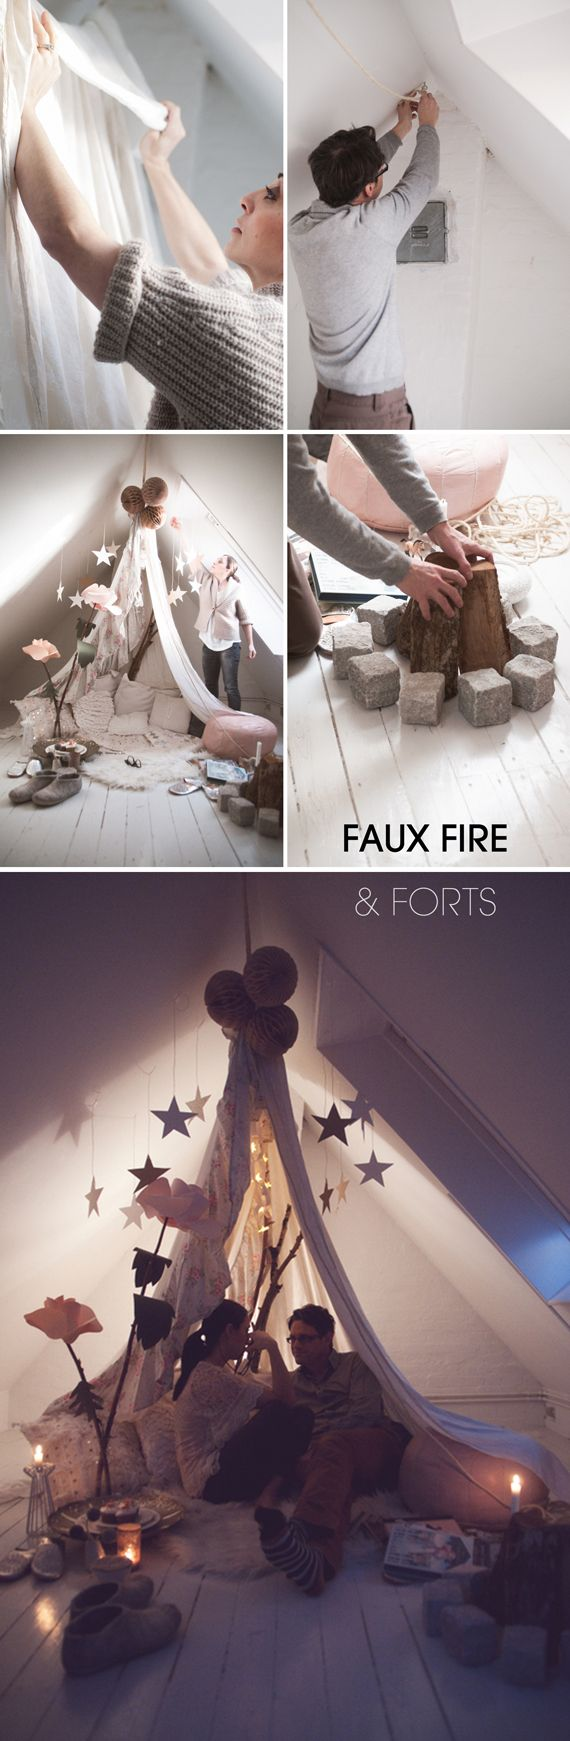 #ForTheHome | #DIY indoor Fire & Fort | http://pinterest.com/JuhiVibhakar/my-fictitious-palace-interior-design-and-home-deco/